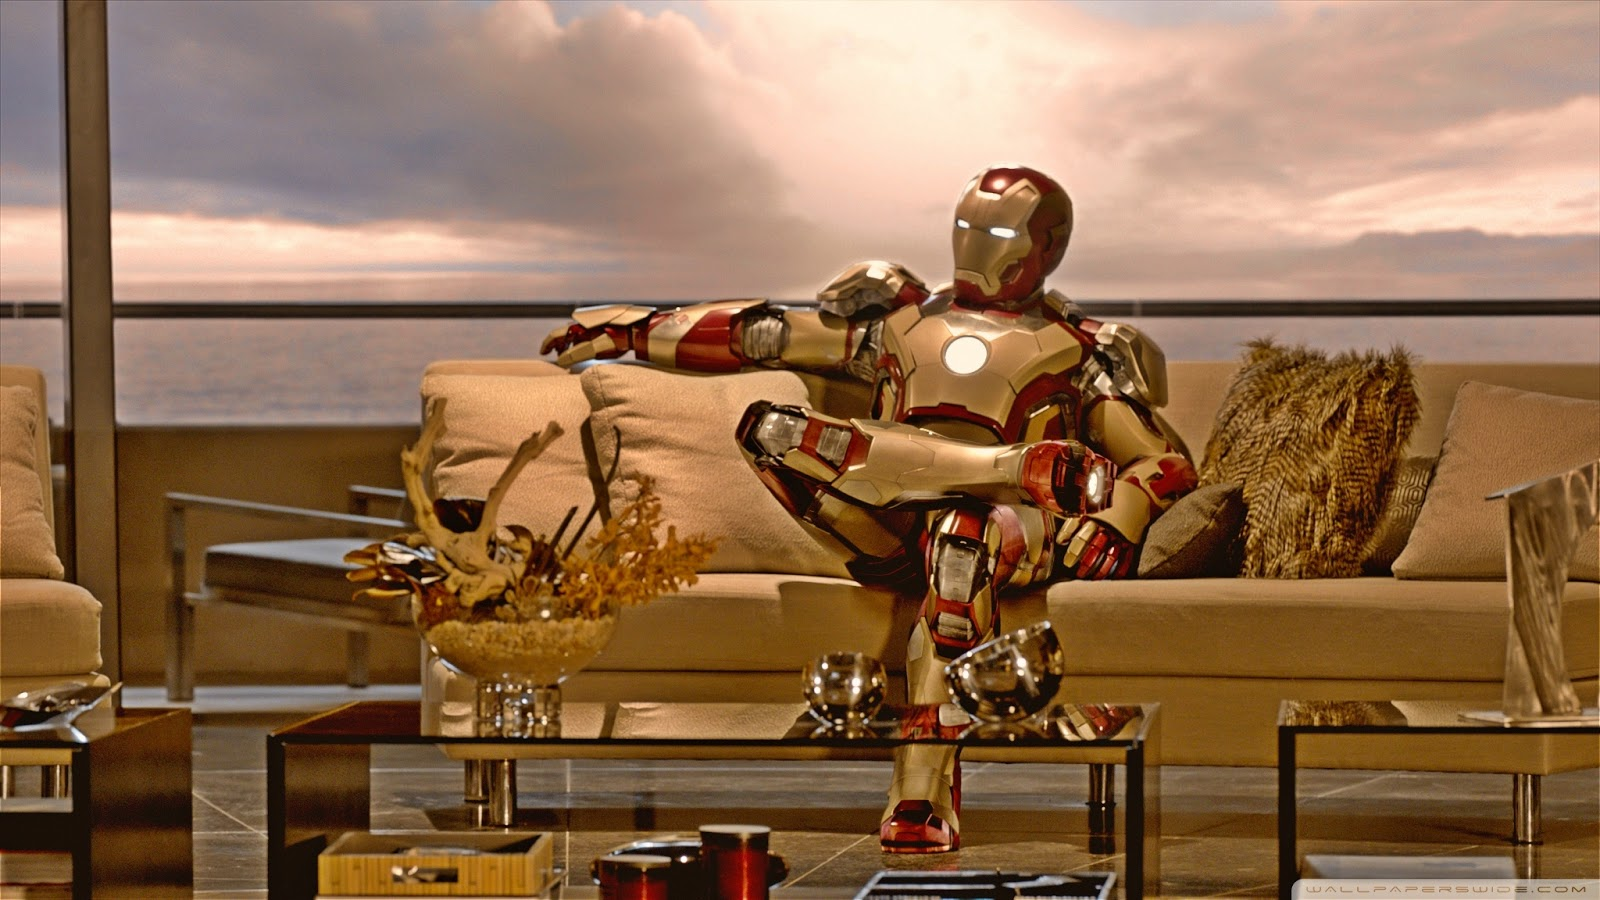 10 bellissimi Wallpapers a tema Iron Man 3 1600x900